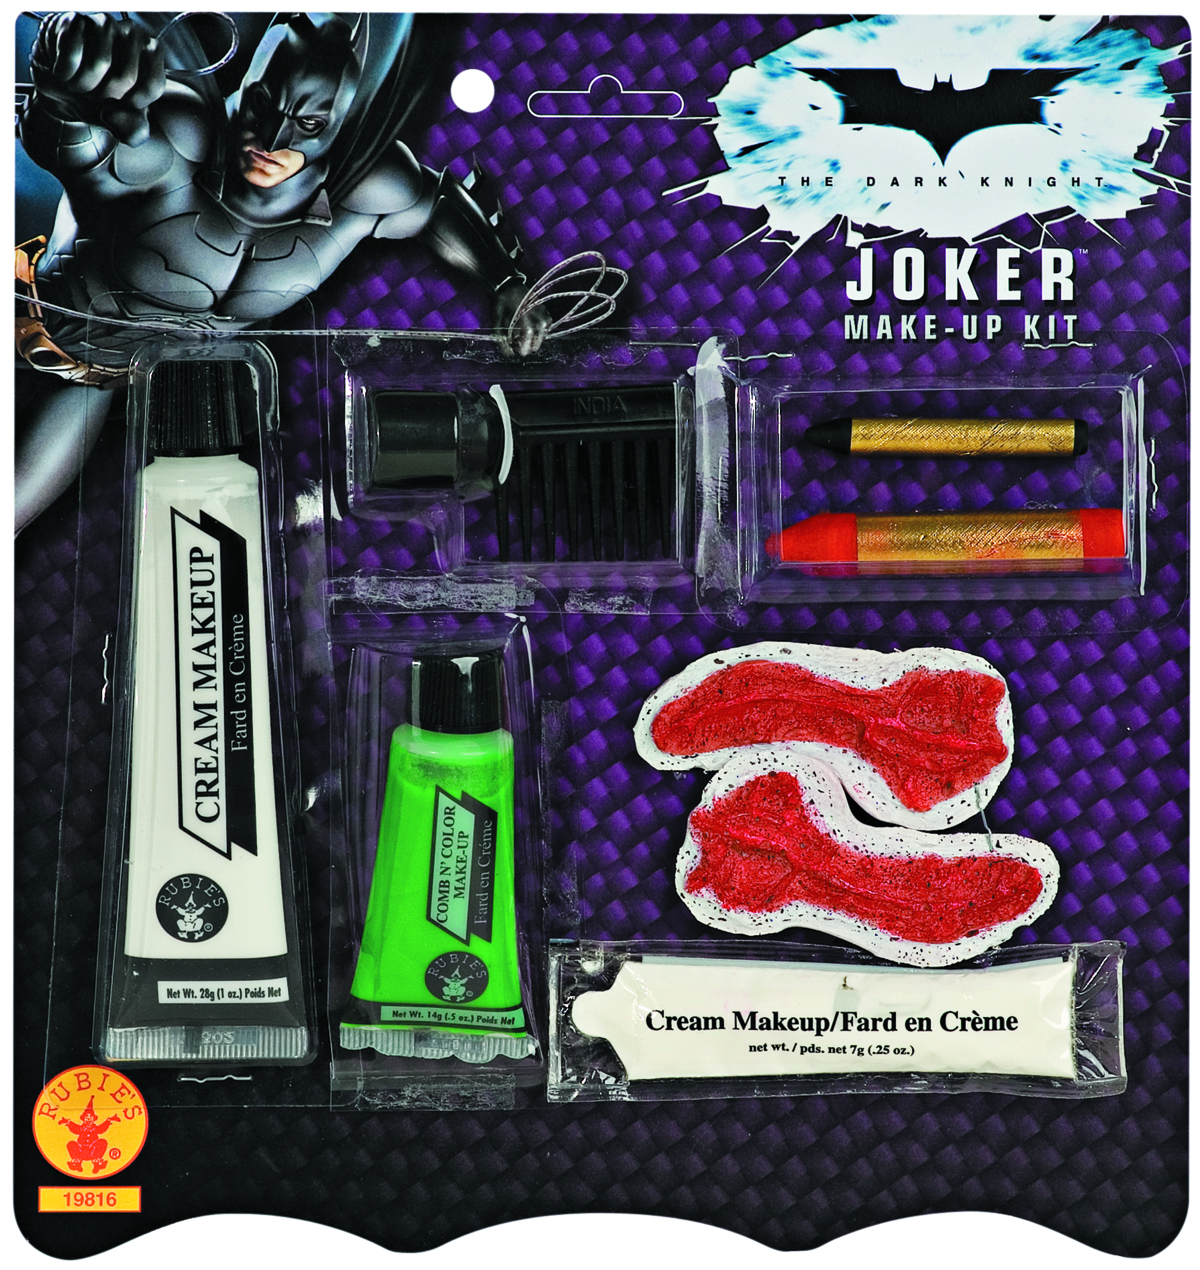 DARK KNIGHT JOKER MAKE UP KIT